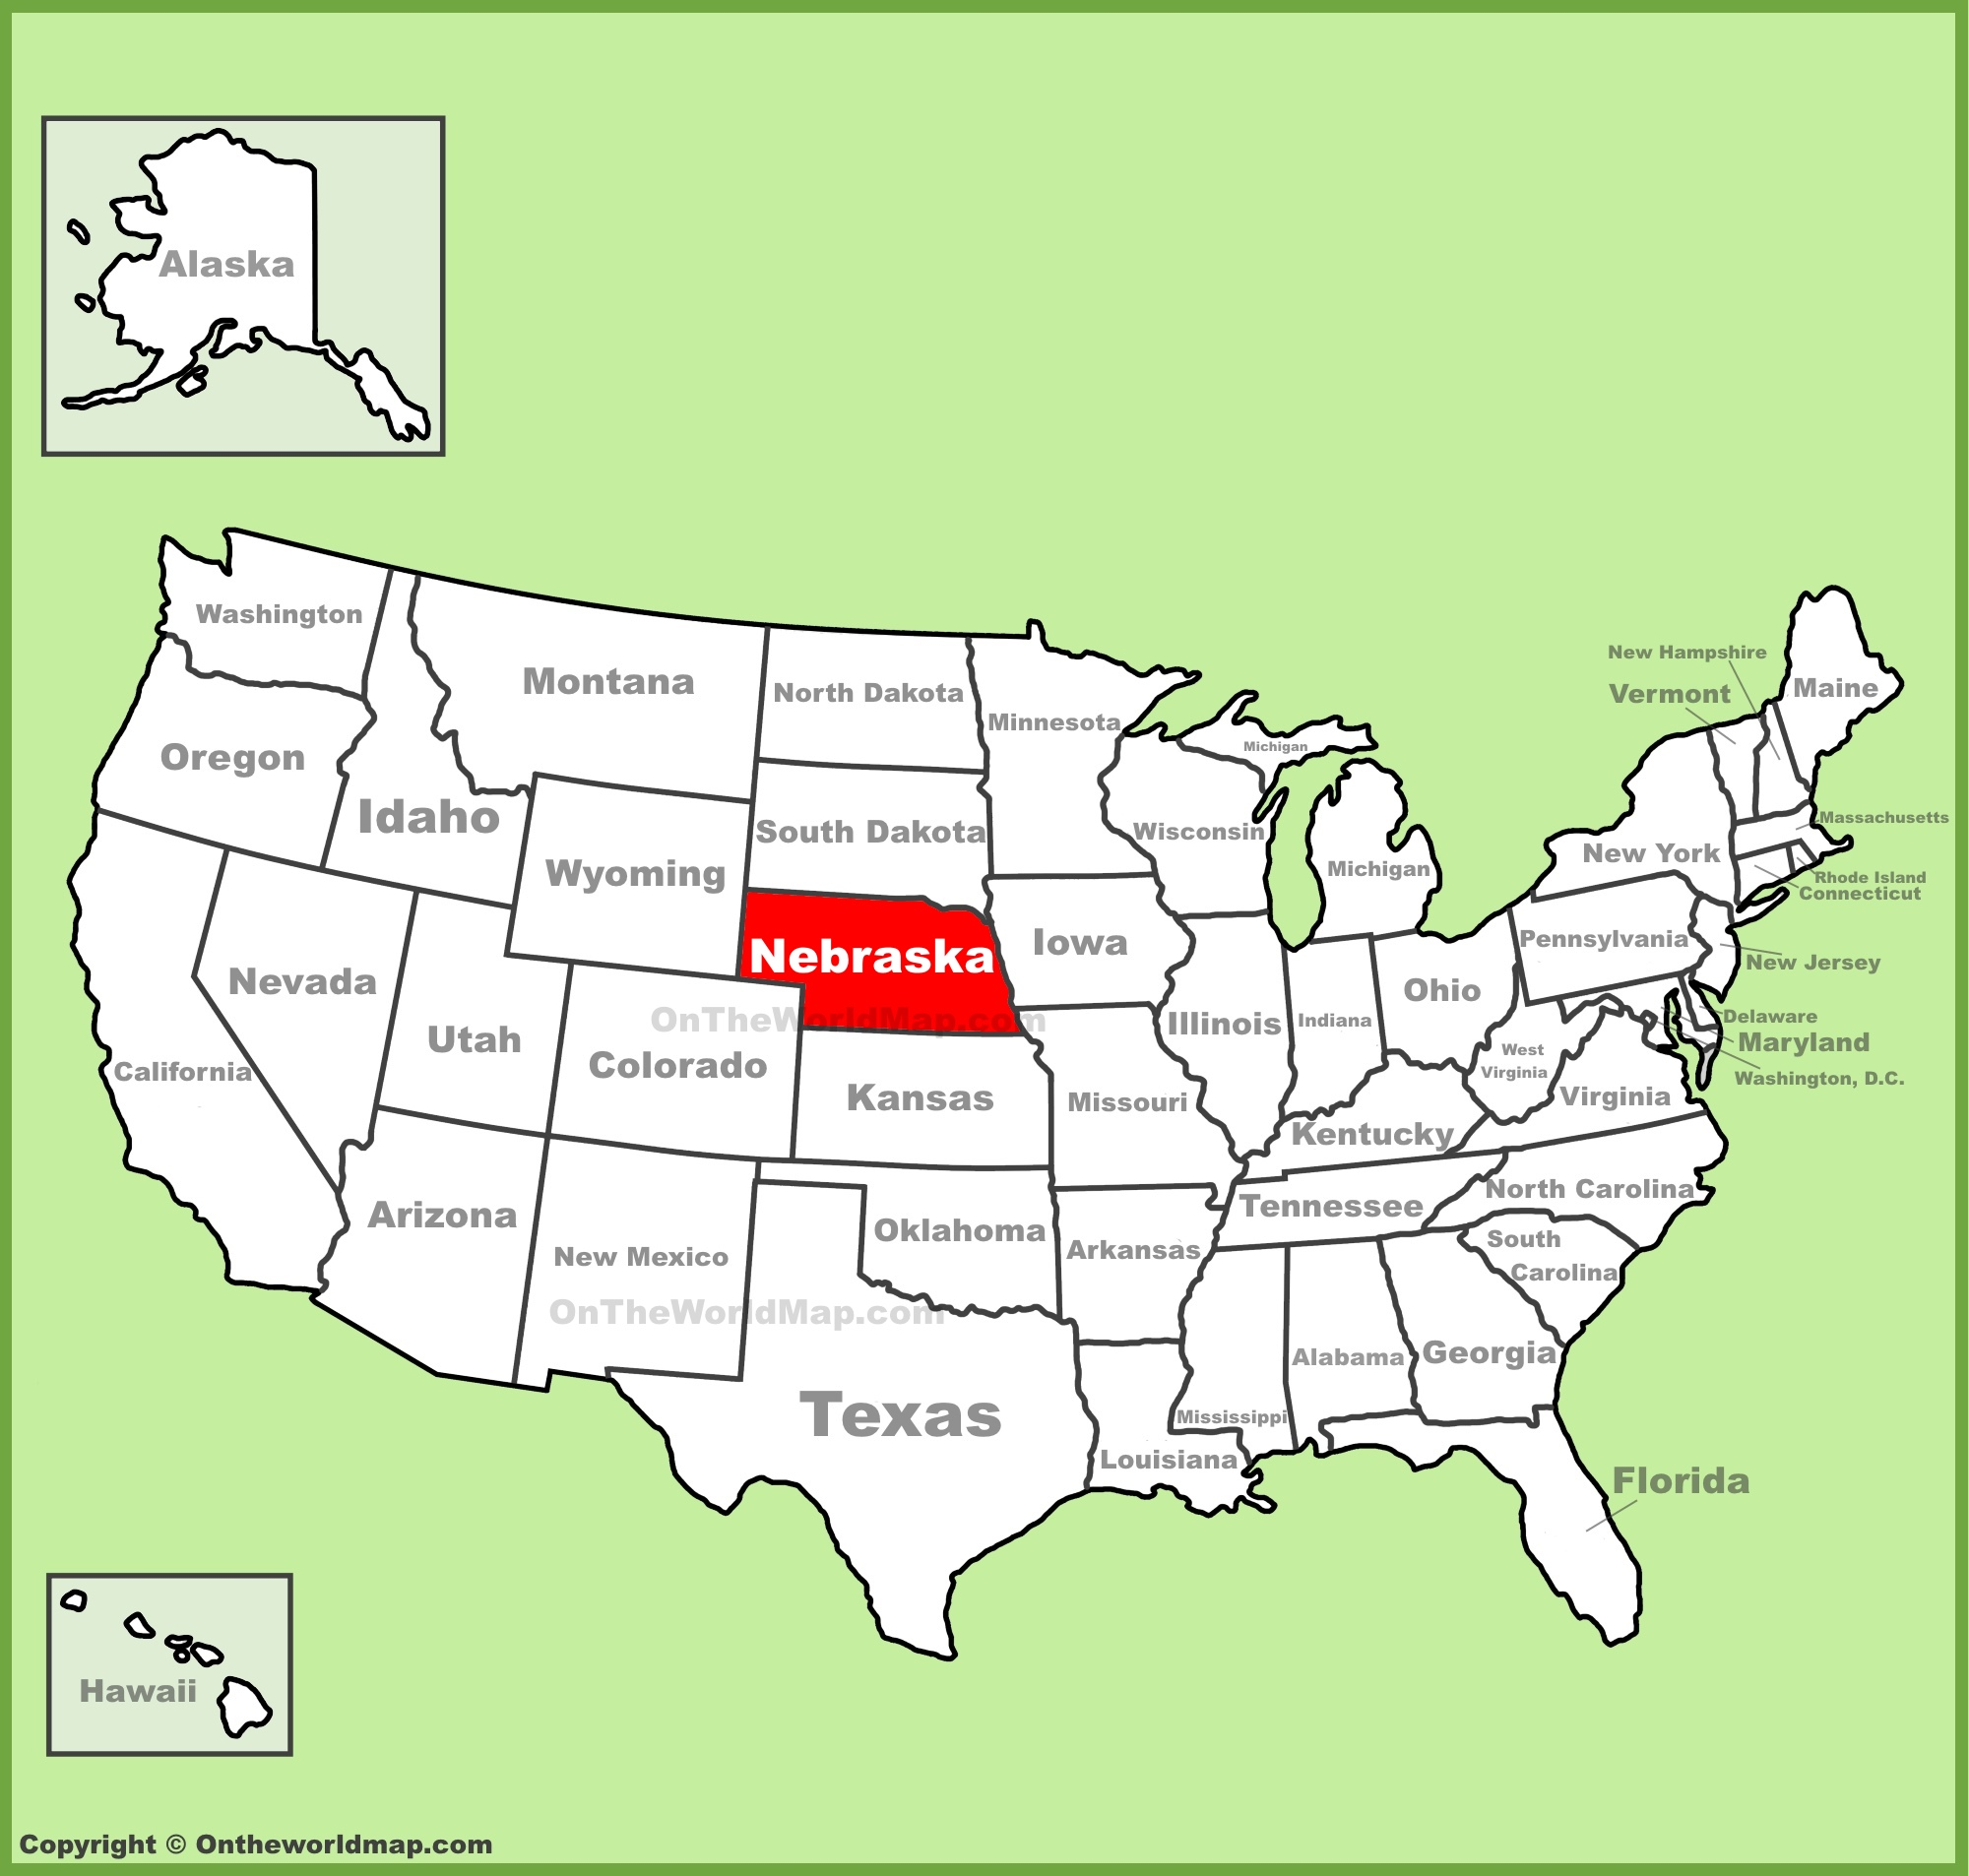 Nebraska On A Map Nebraska location on the U.S. Map